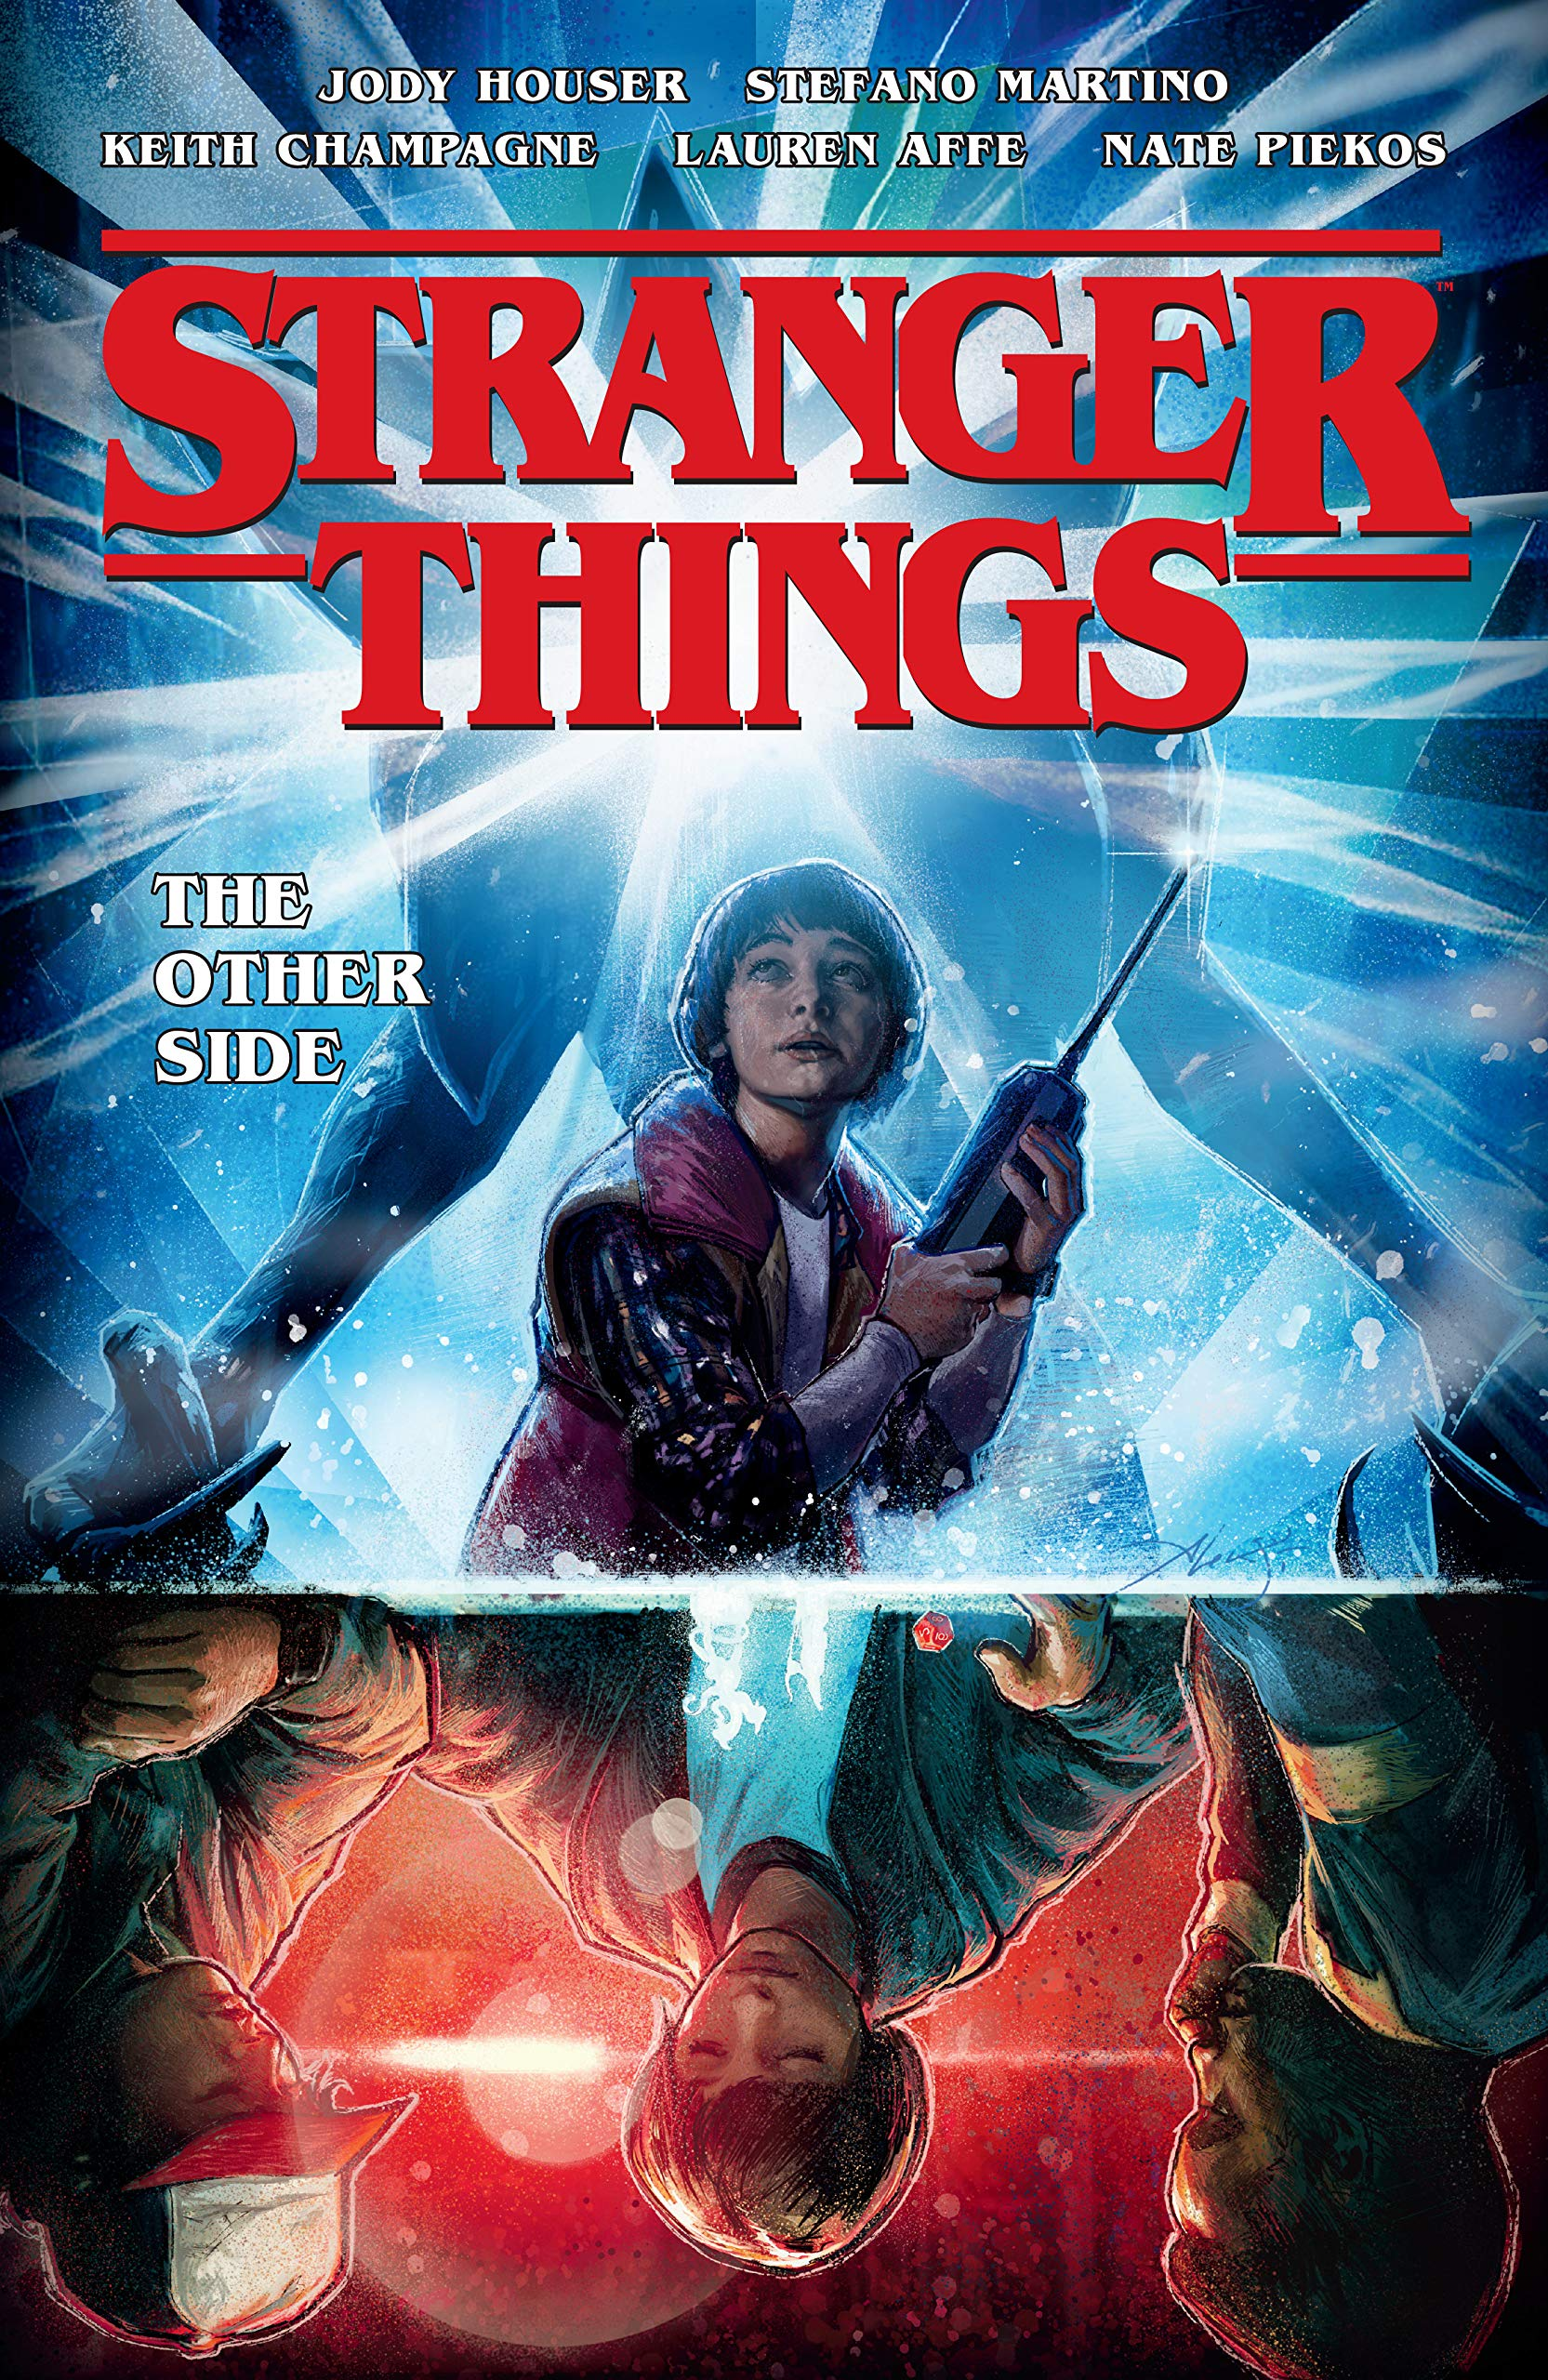 Billedresultat for stranger things graphic novel